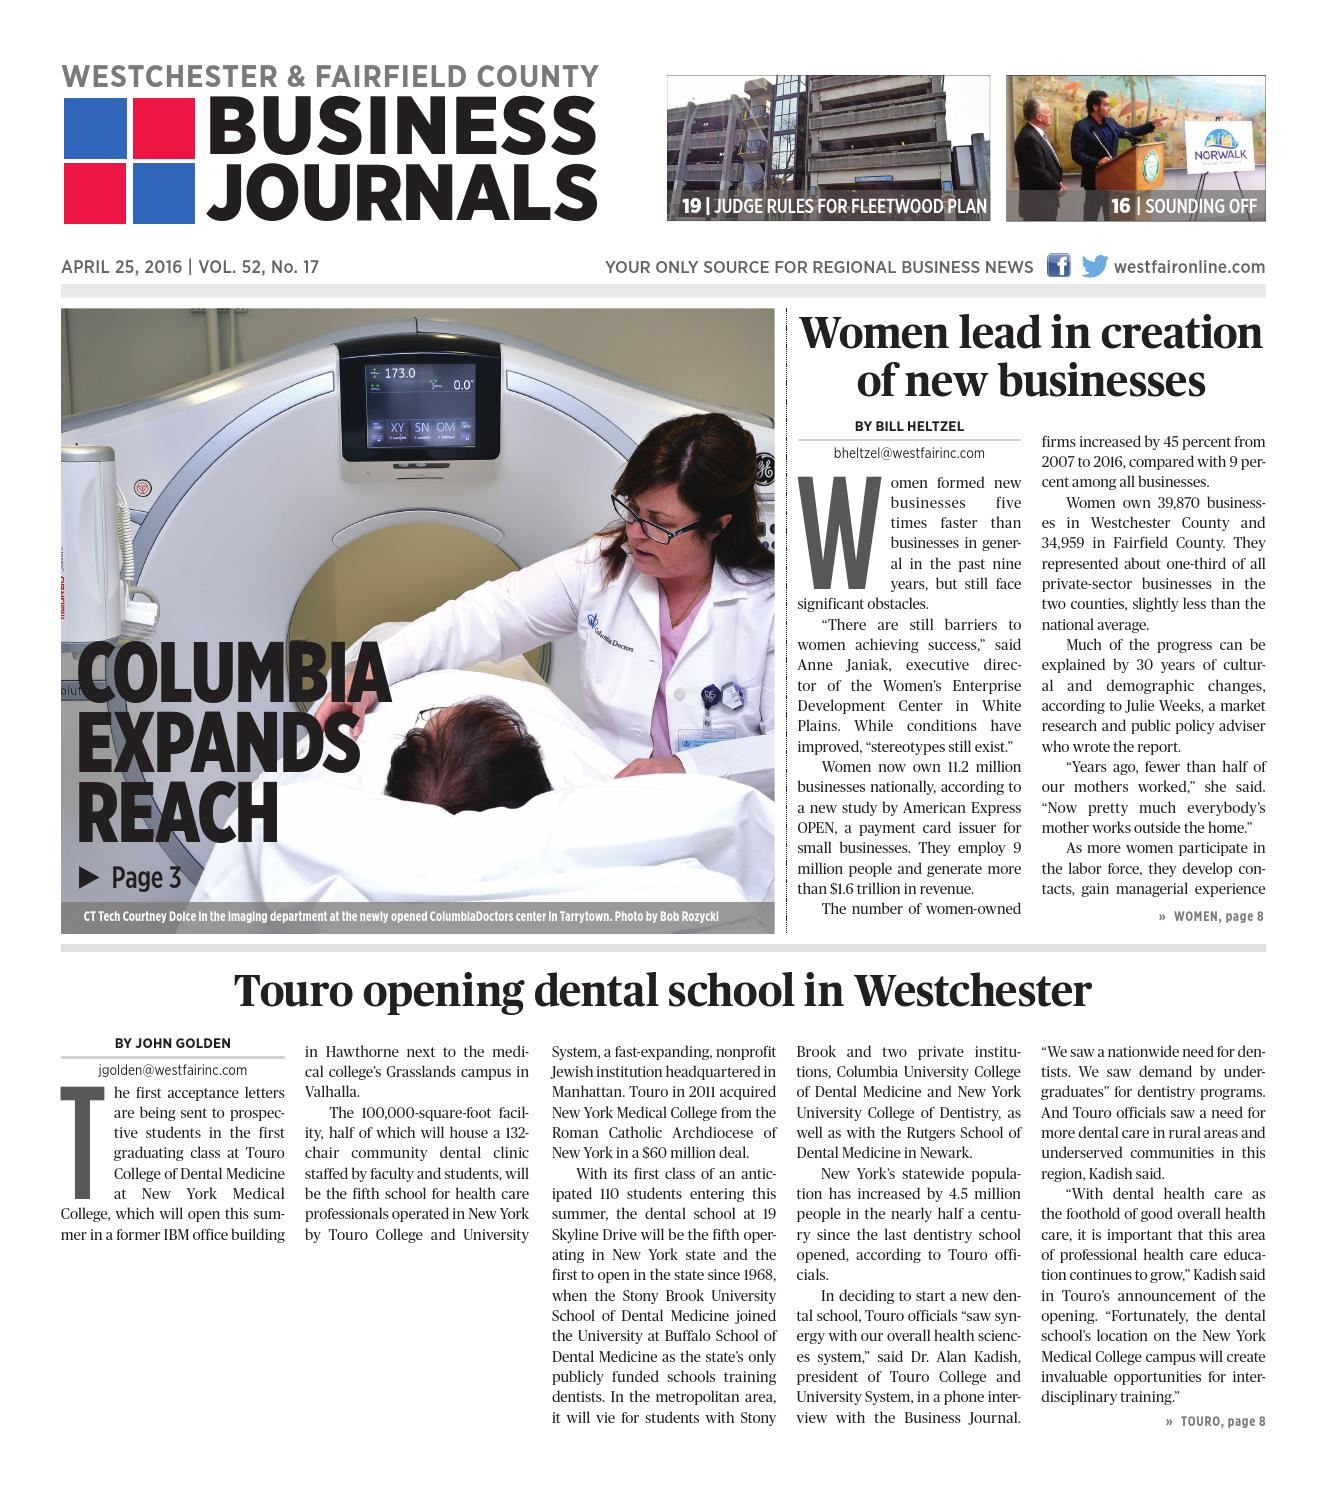 Westchester and Fairfield County Business Journals 042516 by